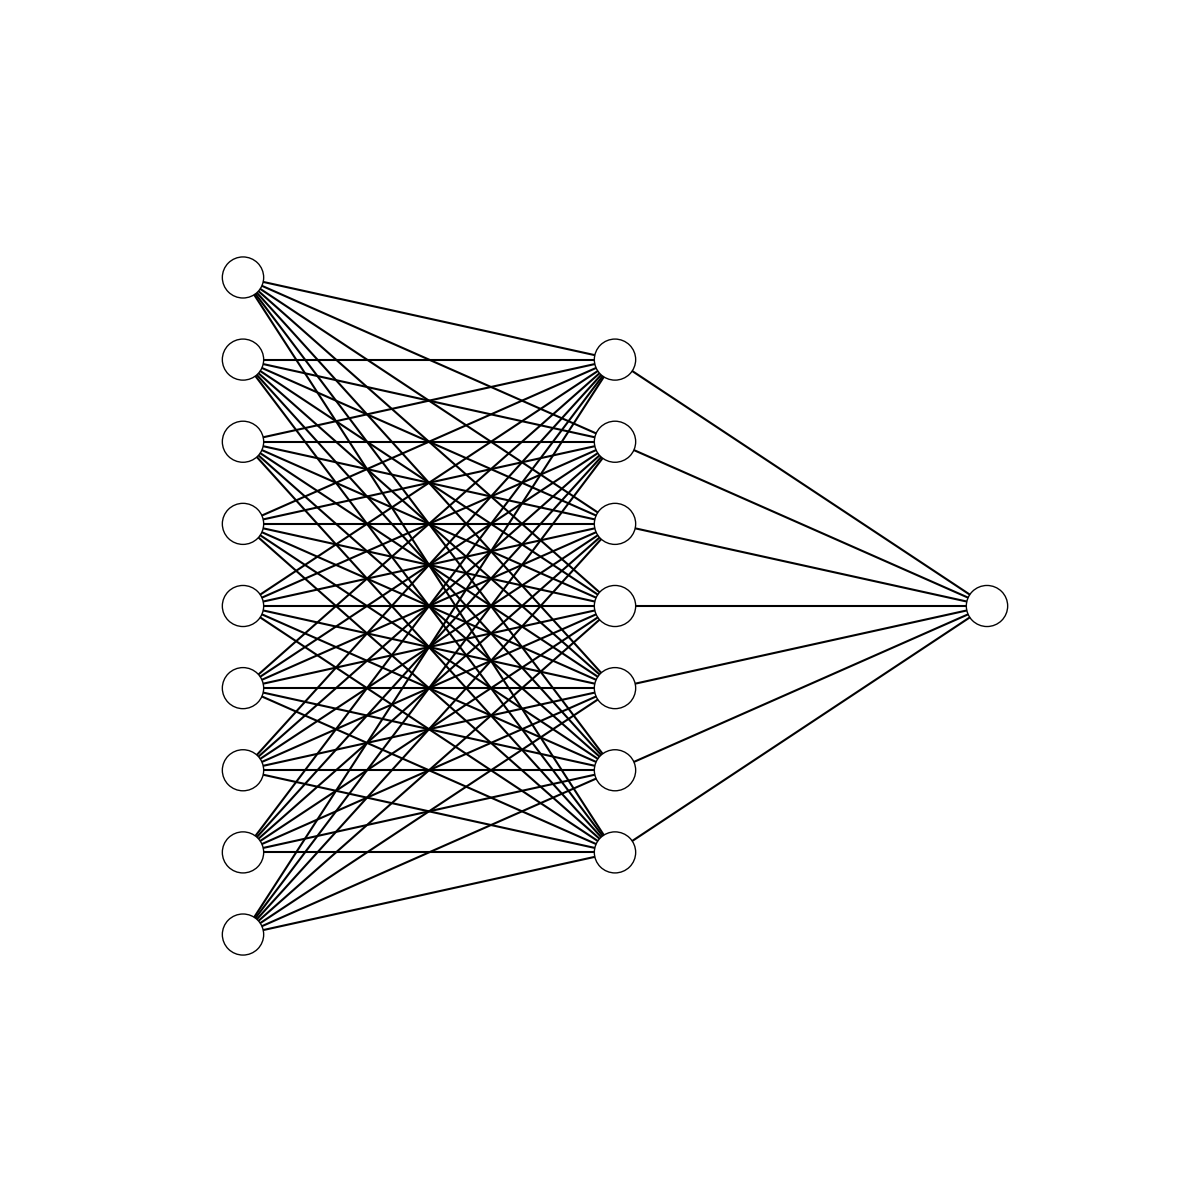 Picture of Simple Neural Network in Matlab for Predicting Scientific Data